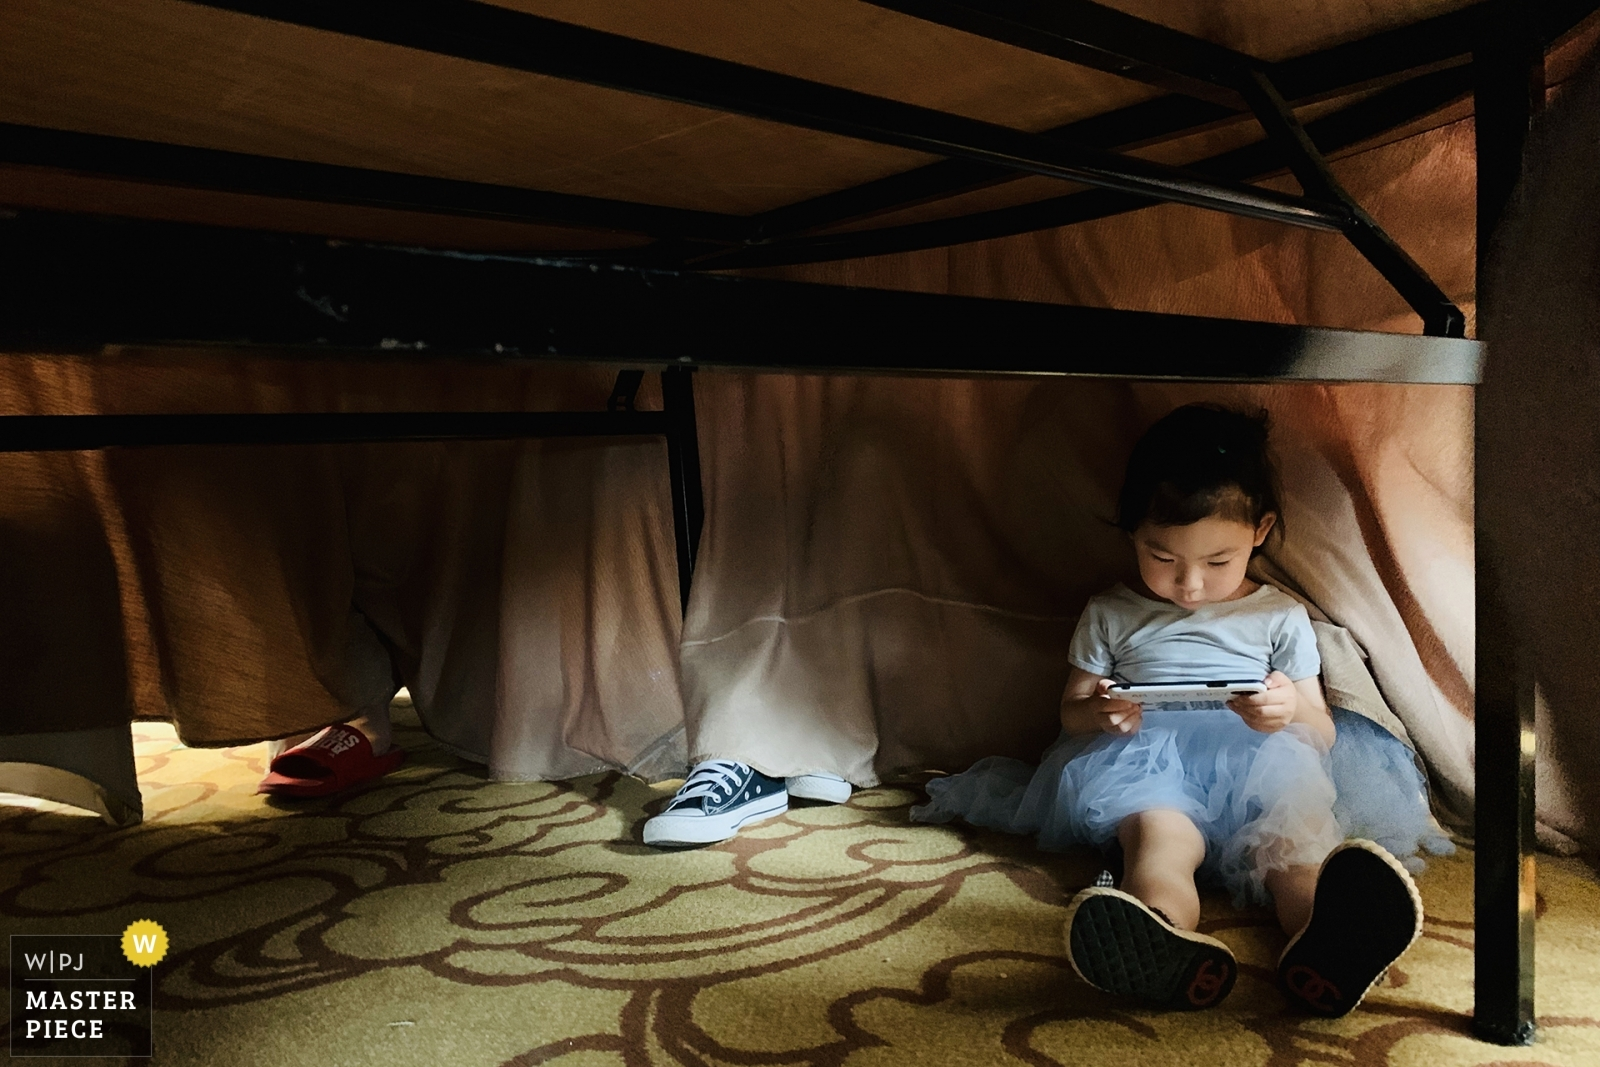 Children hide under the dining table and play with their mobile phones - Sanming, Fujian Wedding Photography -  | Hotel room